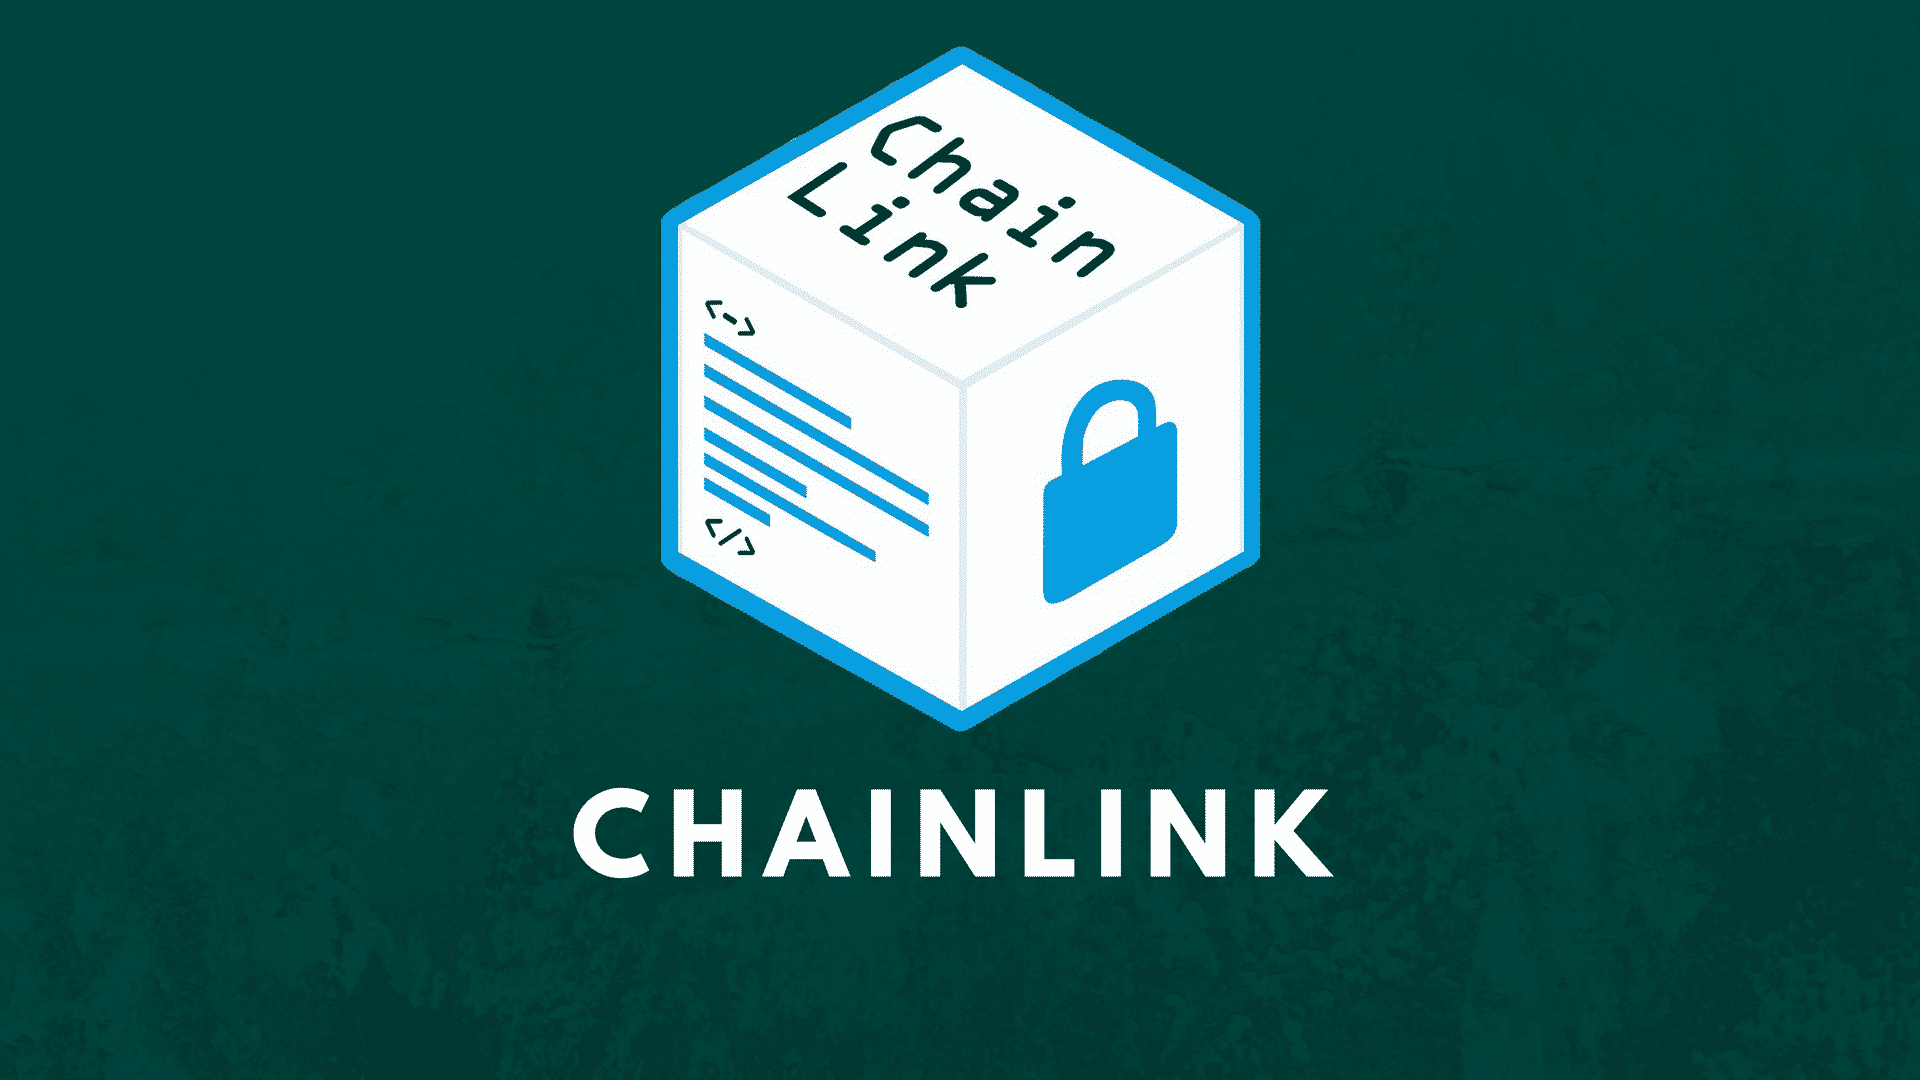 700K ChainLink (Link) Tokens Moved From Dev Wallet To Binance, Is It A Pump and Dump?